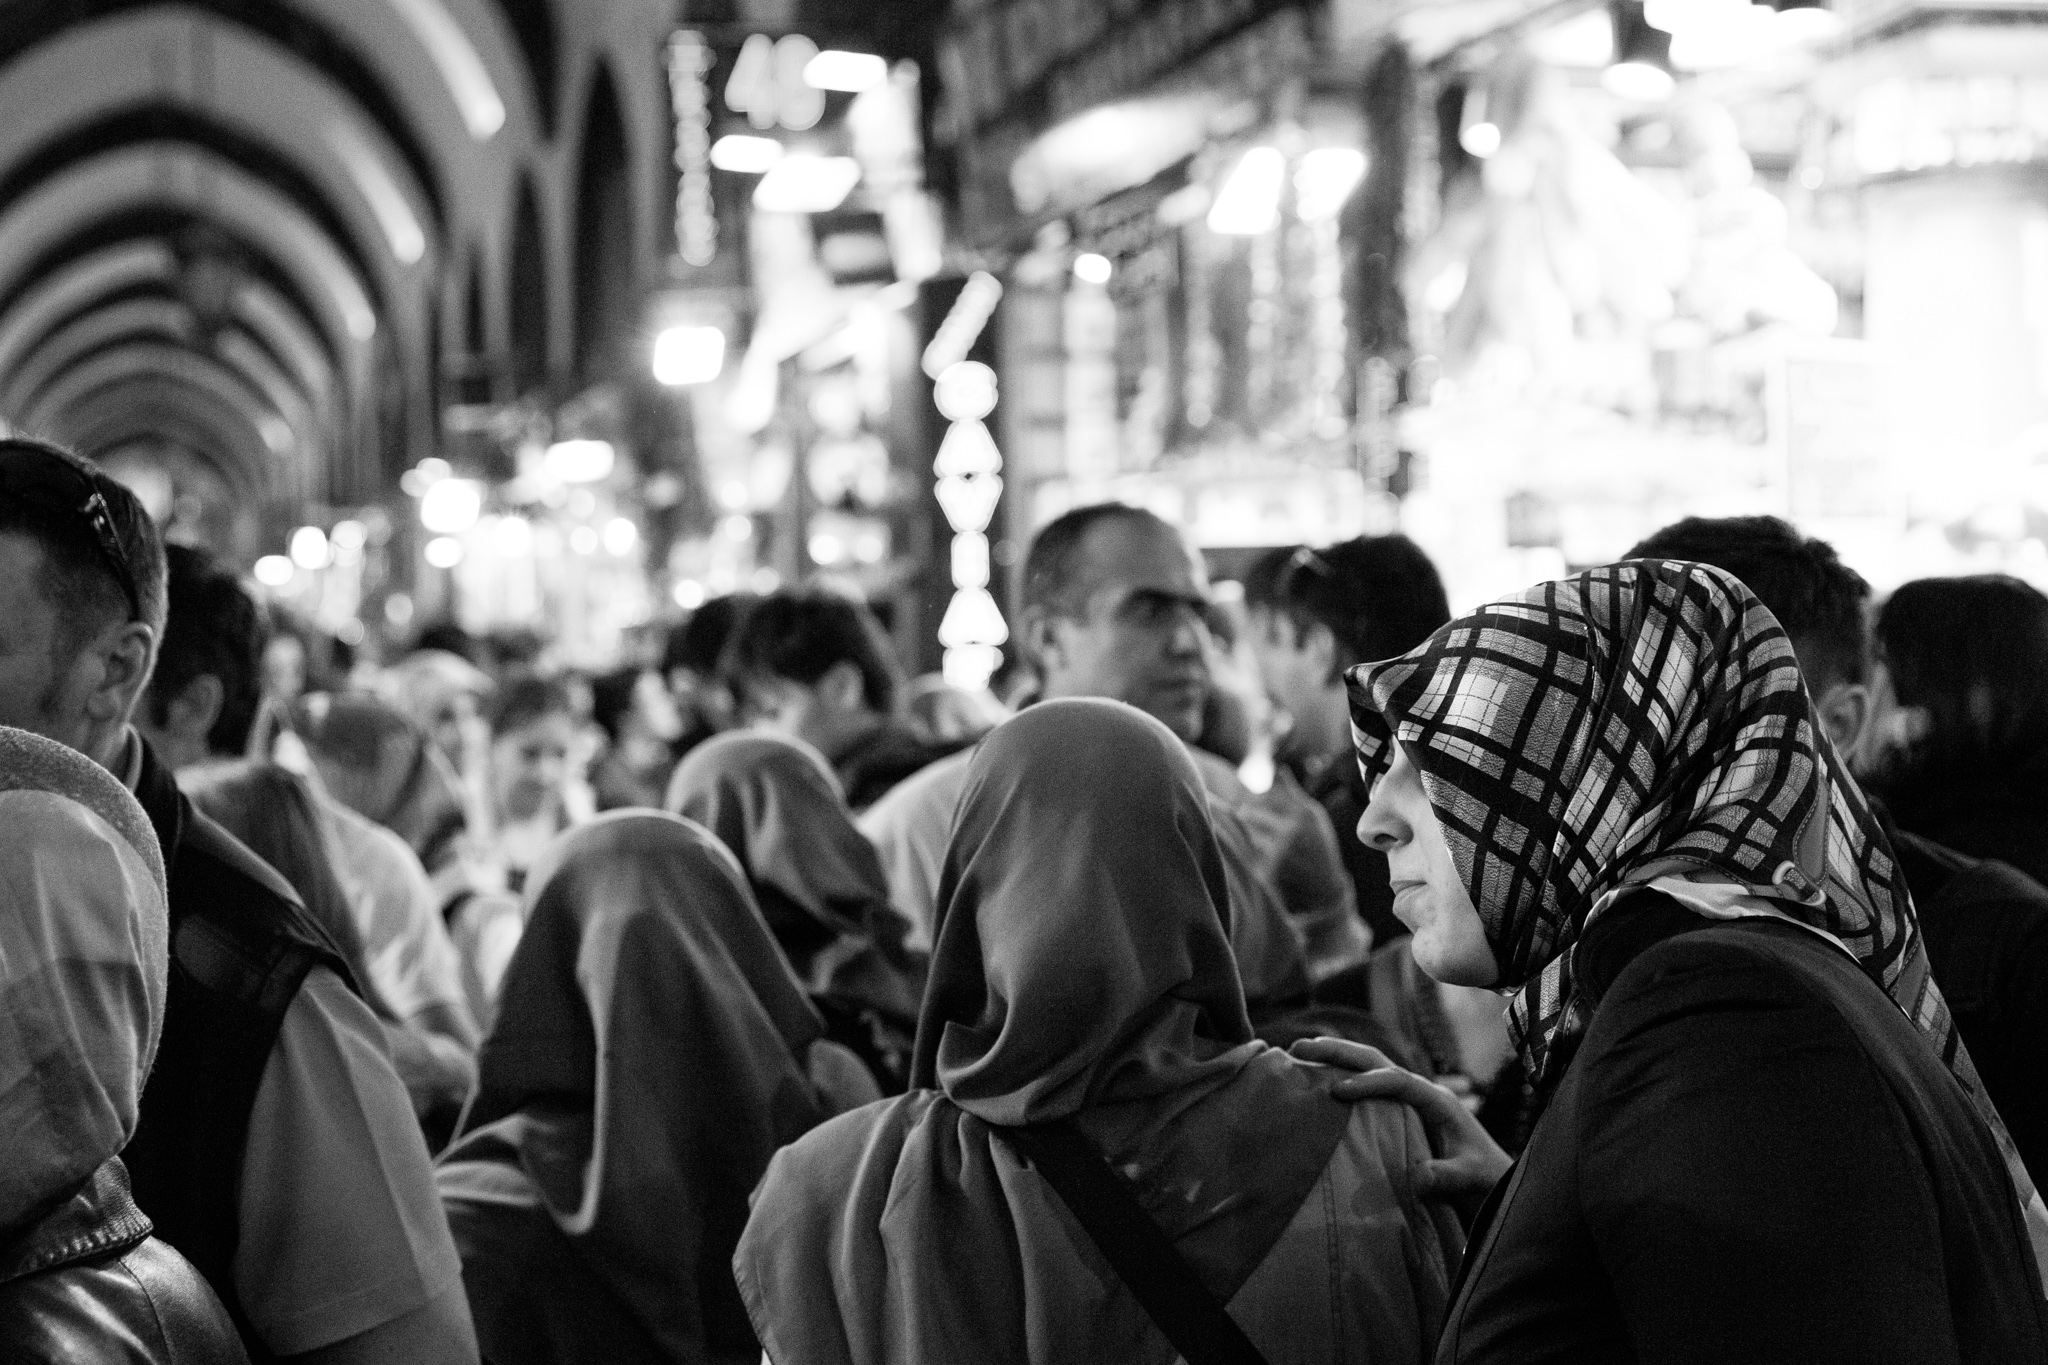 istanbul_misir-carsisi-spicemarket_inside-1691-group-of-scarved-women-walking-away.jpg